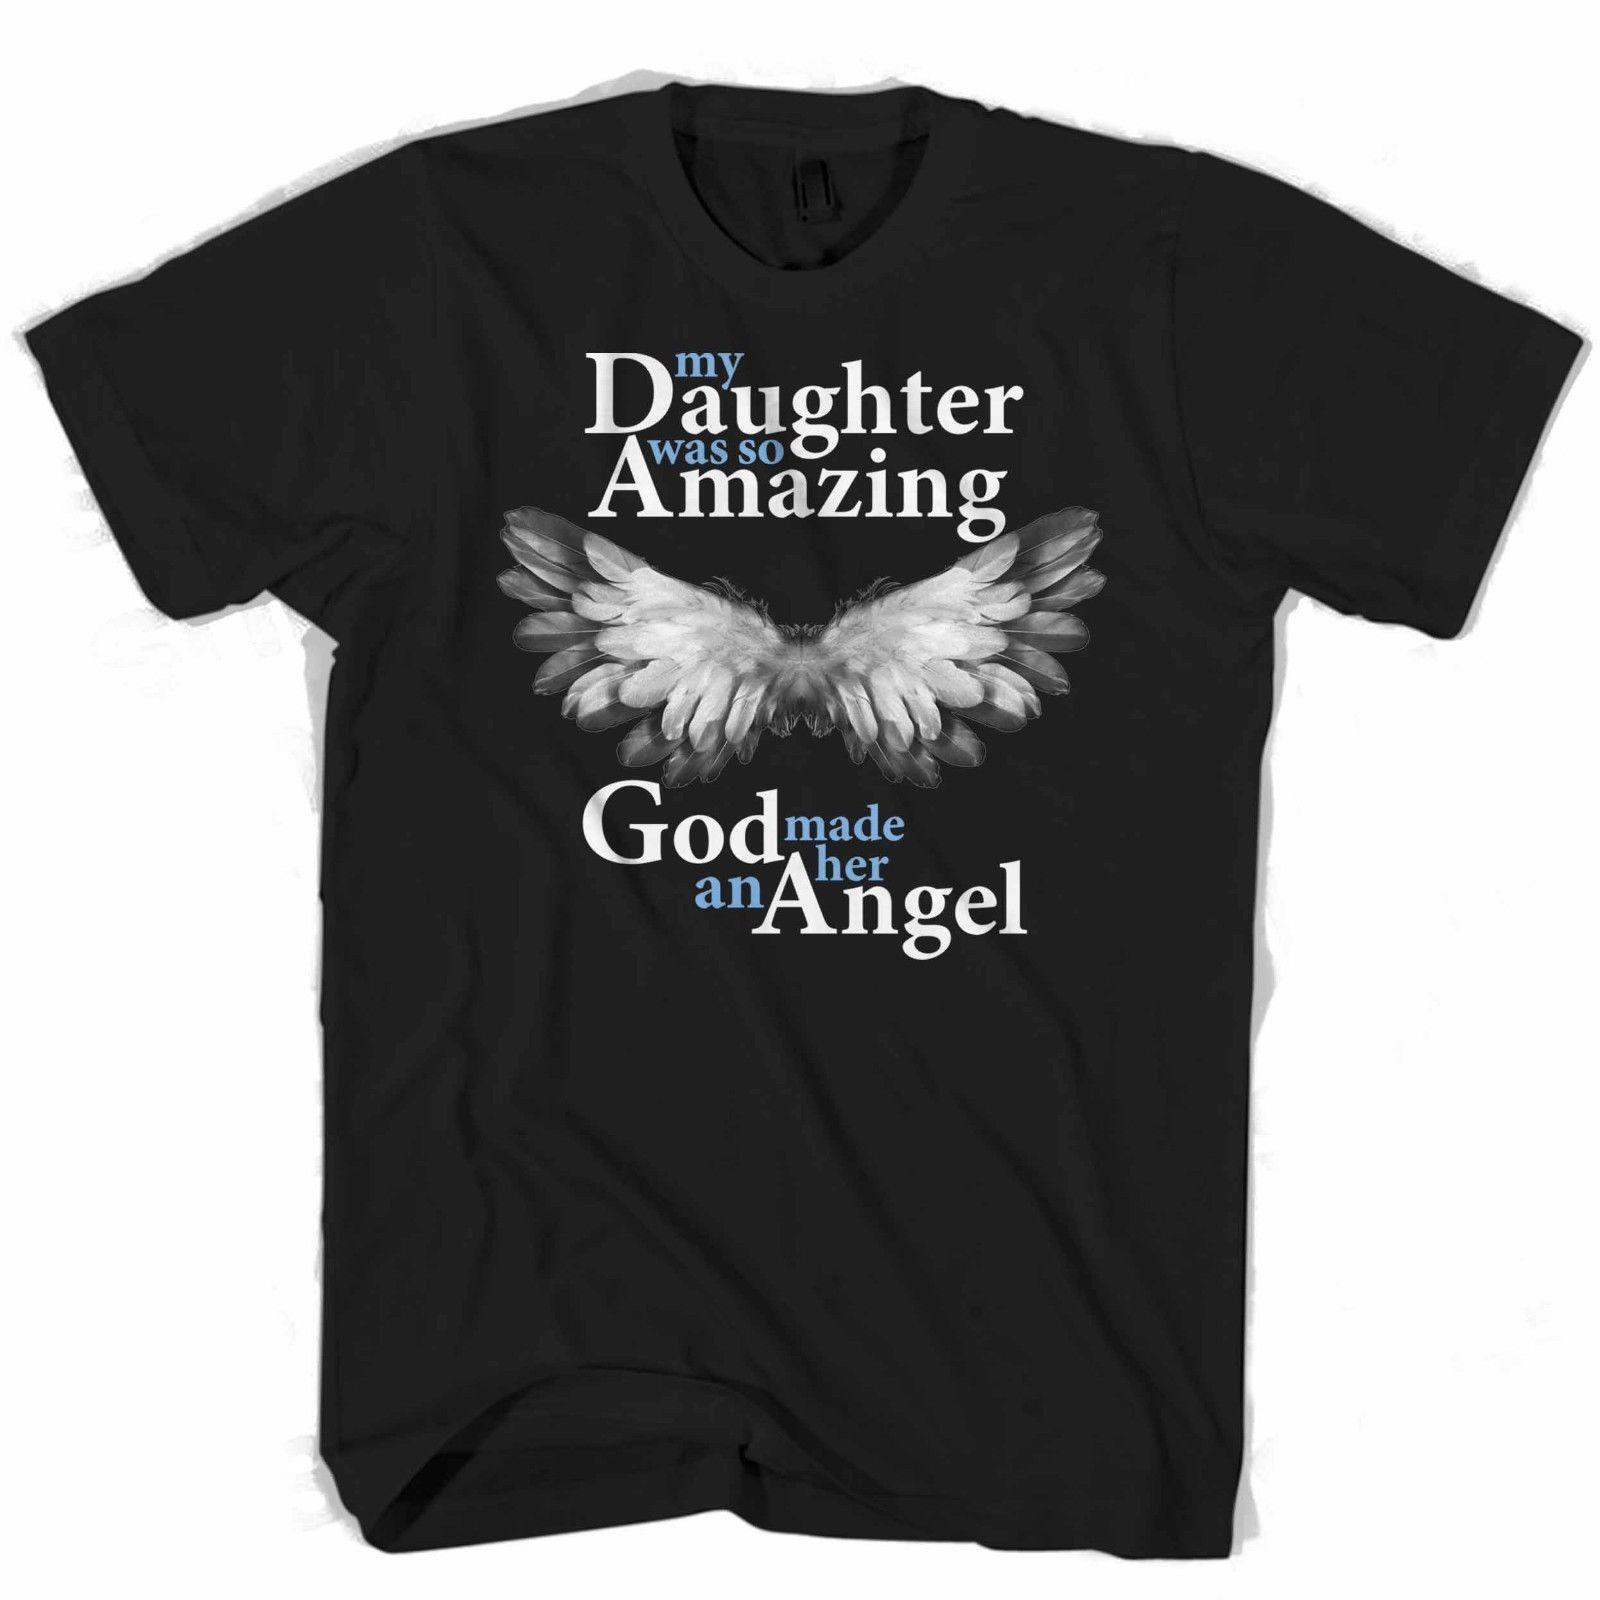 So Amazing: My Daughter Was So Amazing God Made Her An Angel Men'S